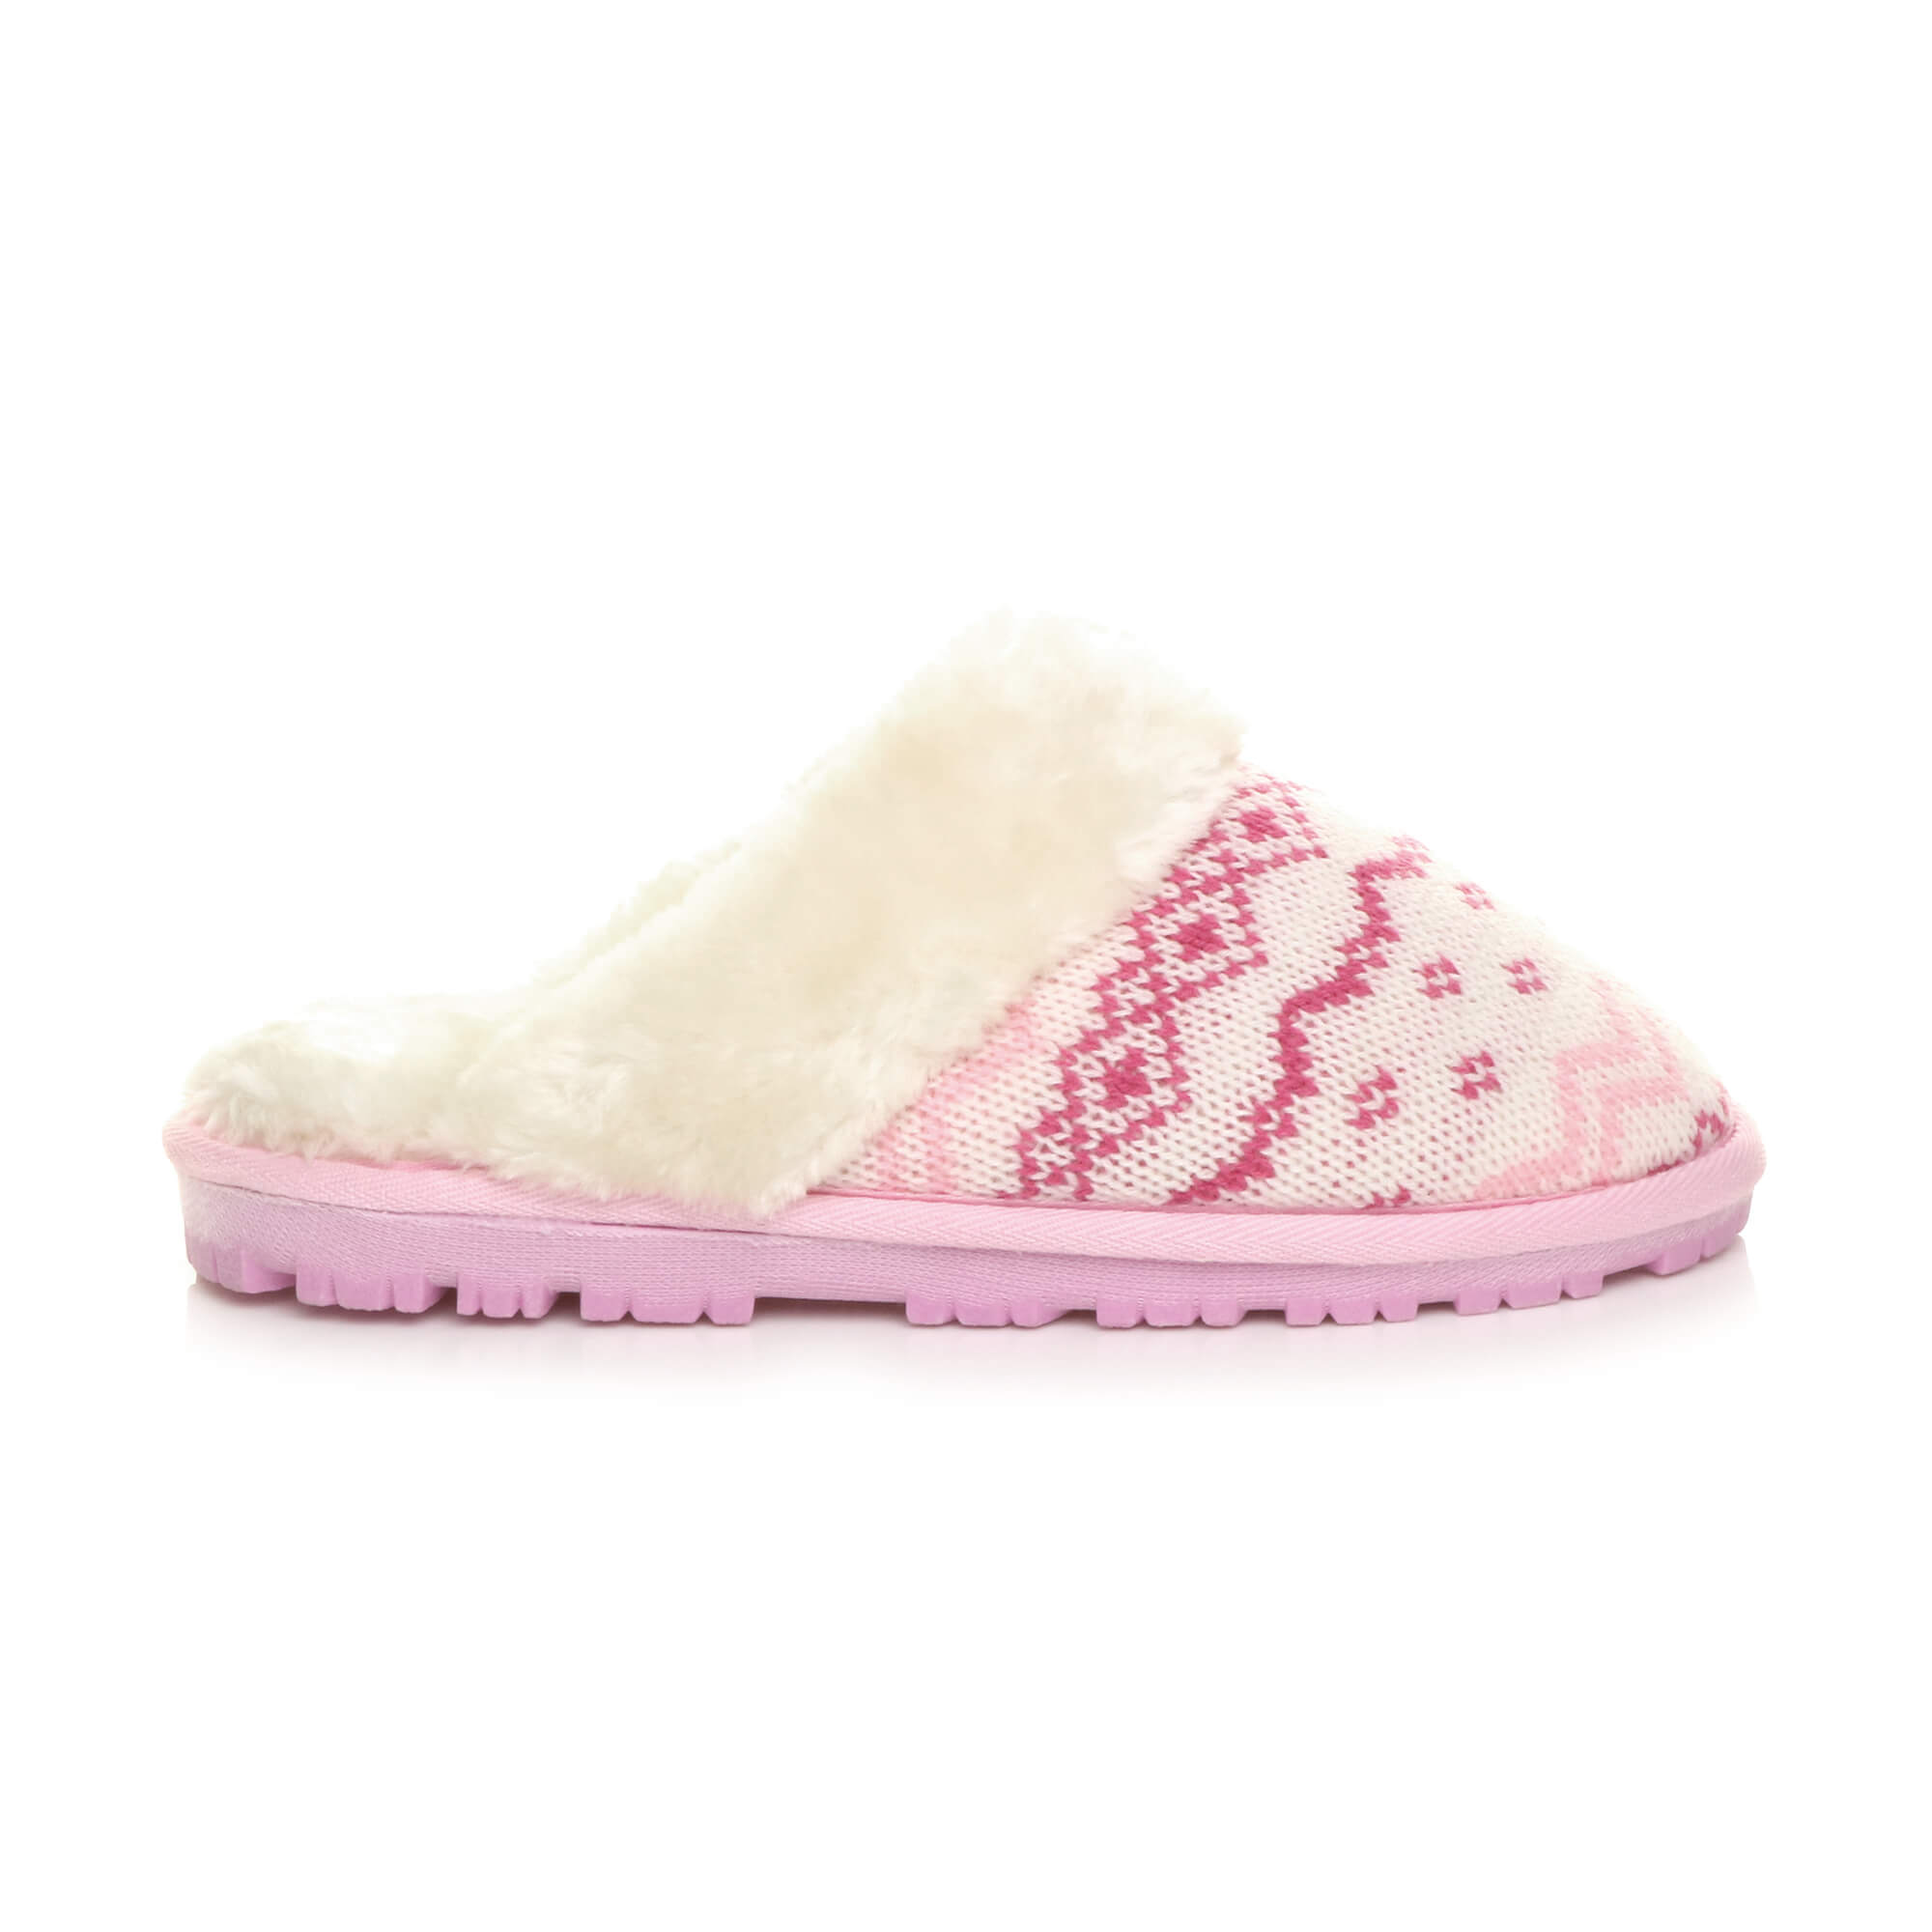 WOMENS-LADIES-FLAT-FUR-LINED-COMFORTABLE-WINTER-MULES-SLIPPERS-HOUSE-SHOES-SIZE thumbnail 73